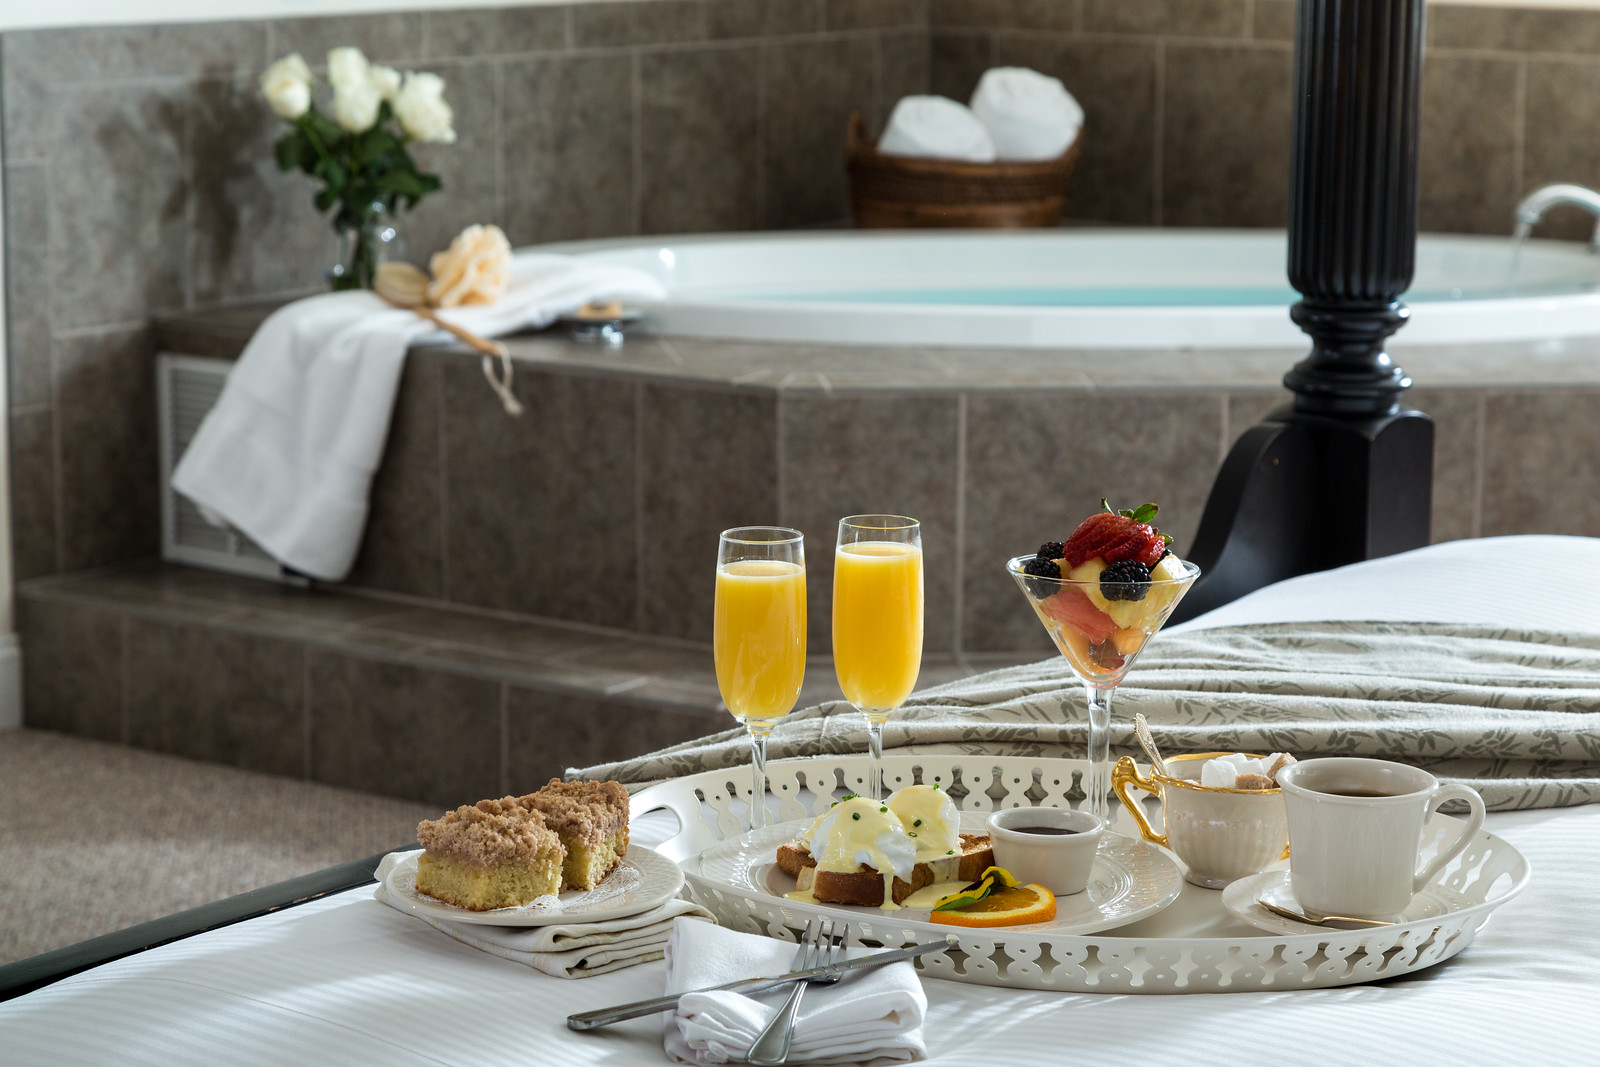 French-Manor-Rooms-Spa-5-7-X3.jpg